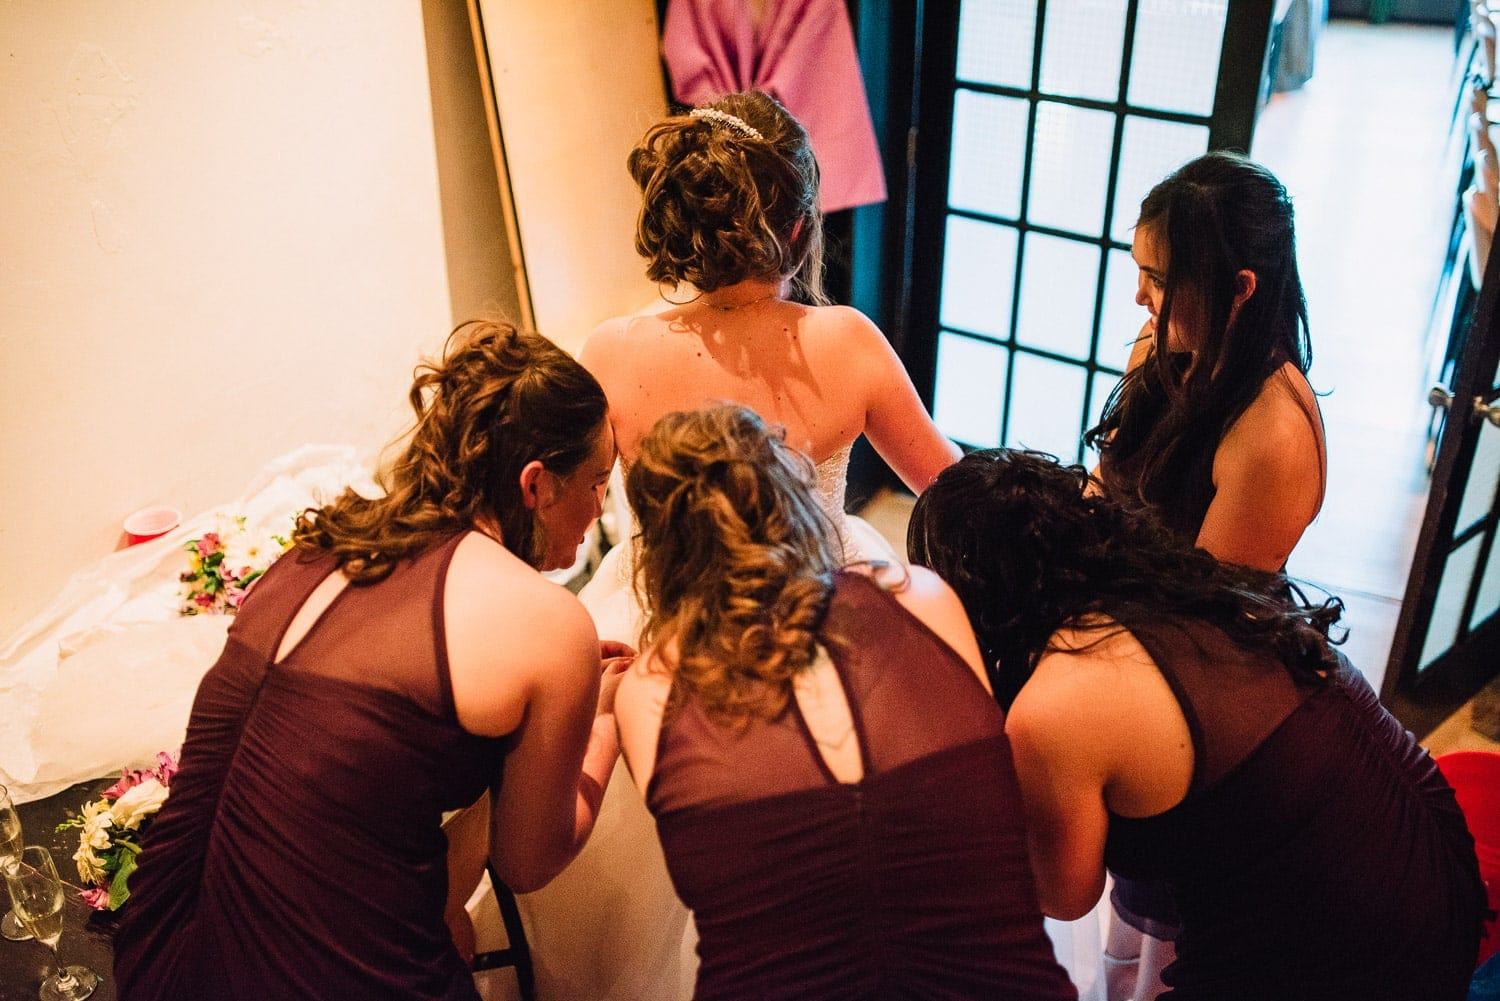 The bridesmaids are assisting the bride with her dress.